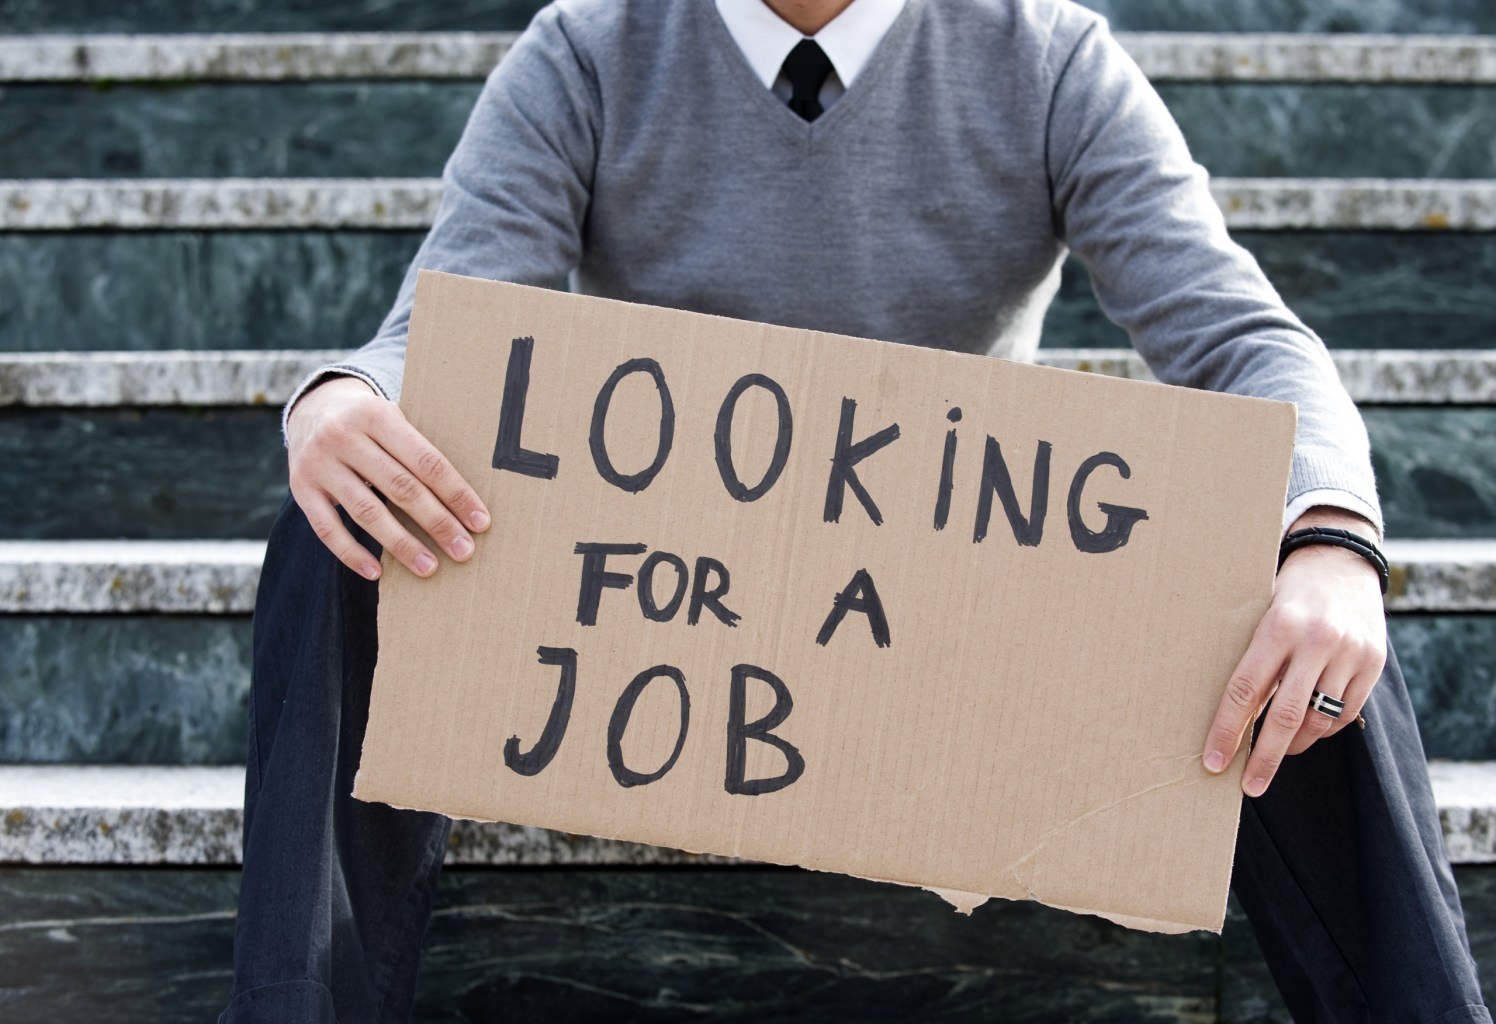 Unemployment image - boy holding a sign